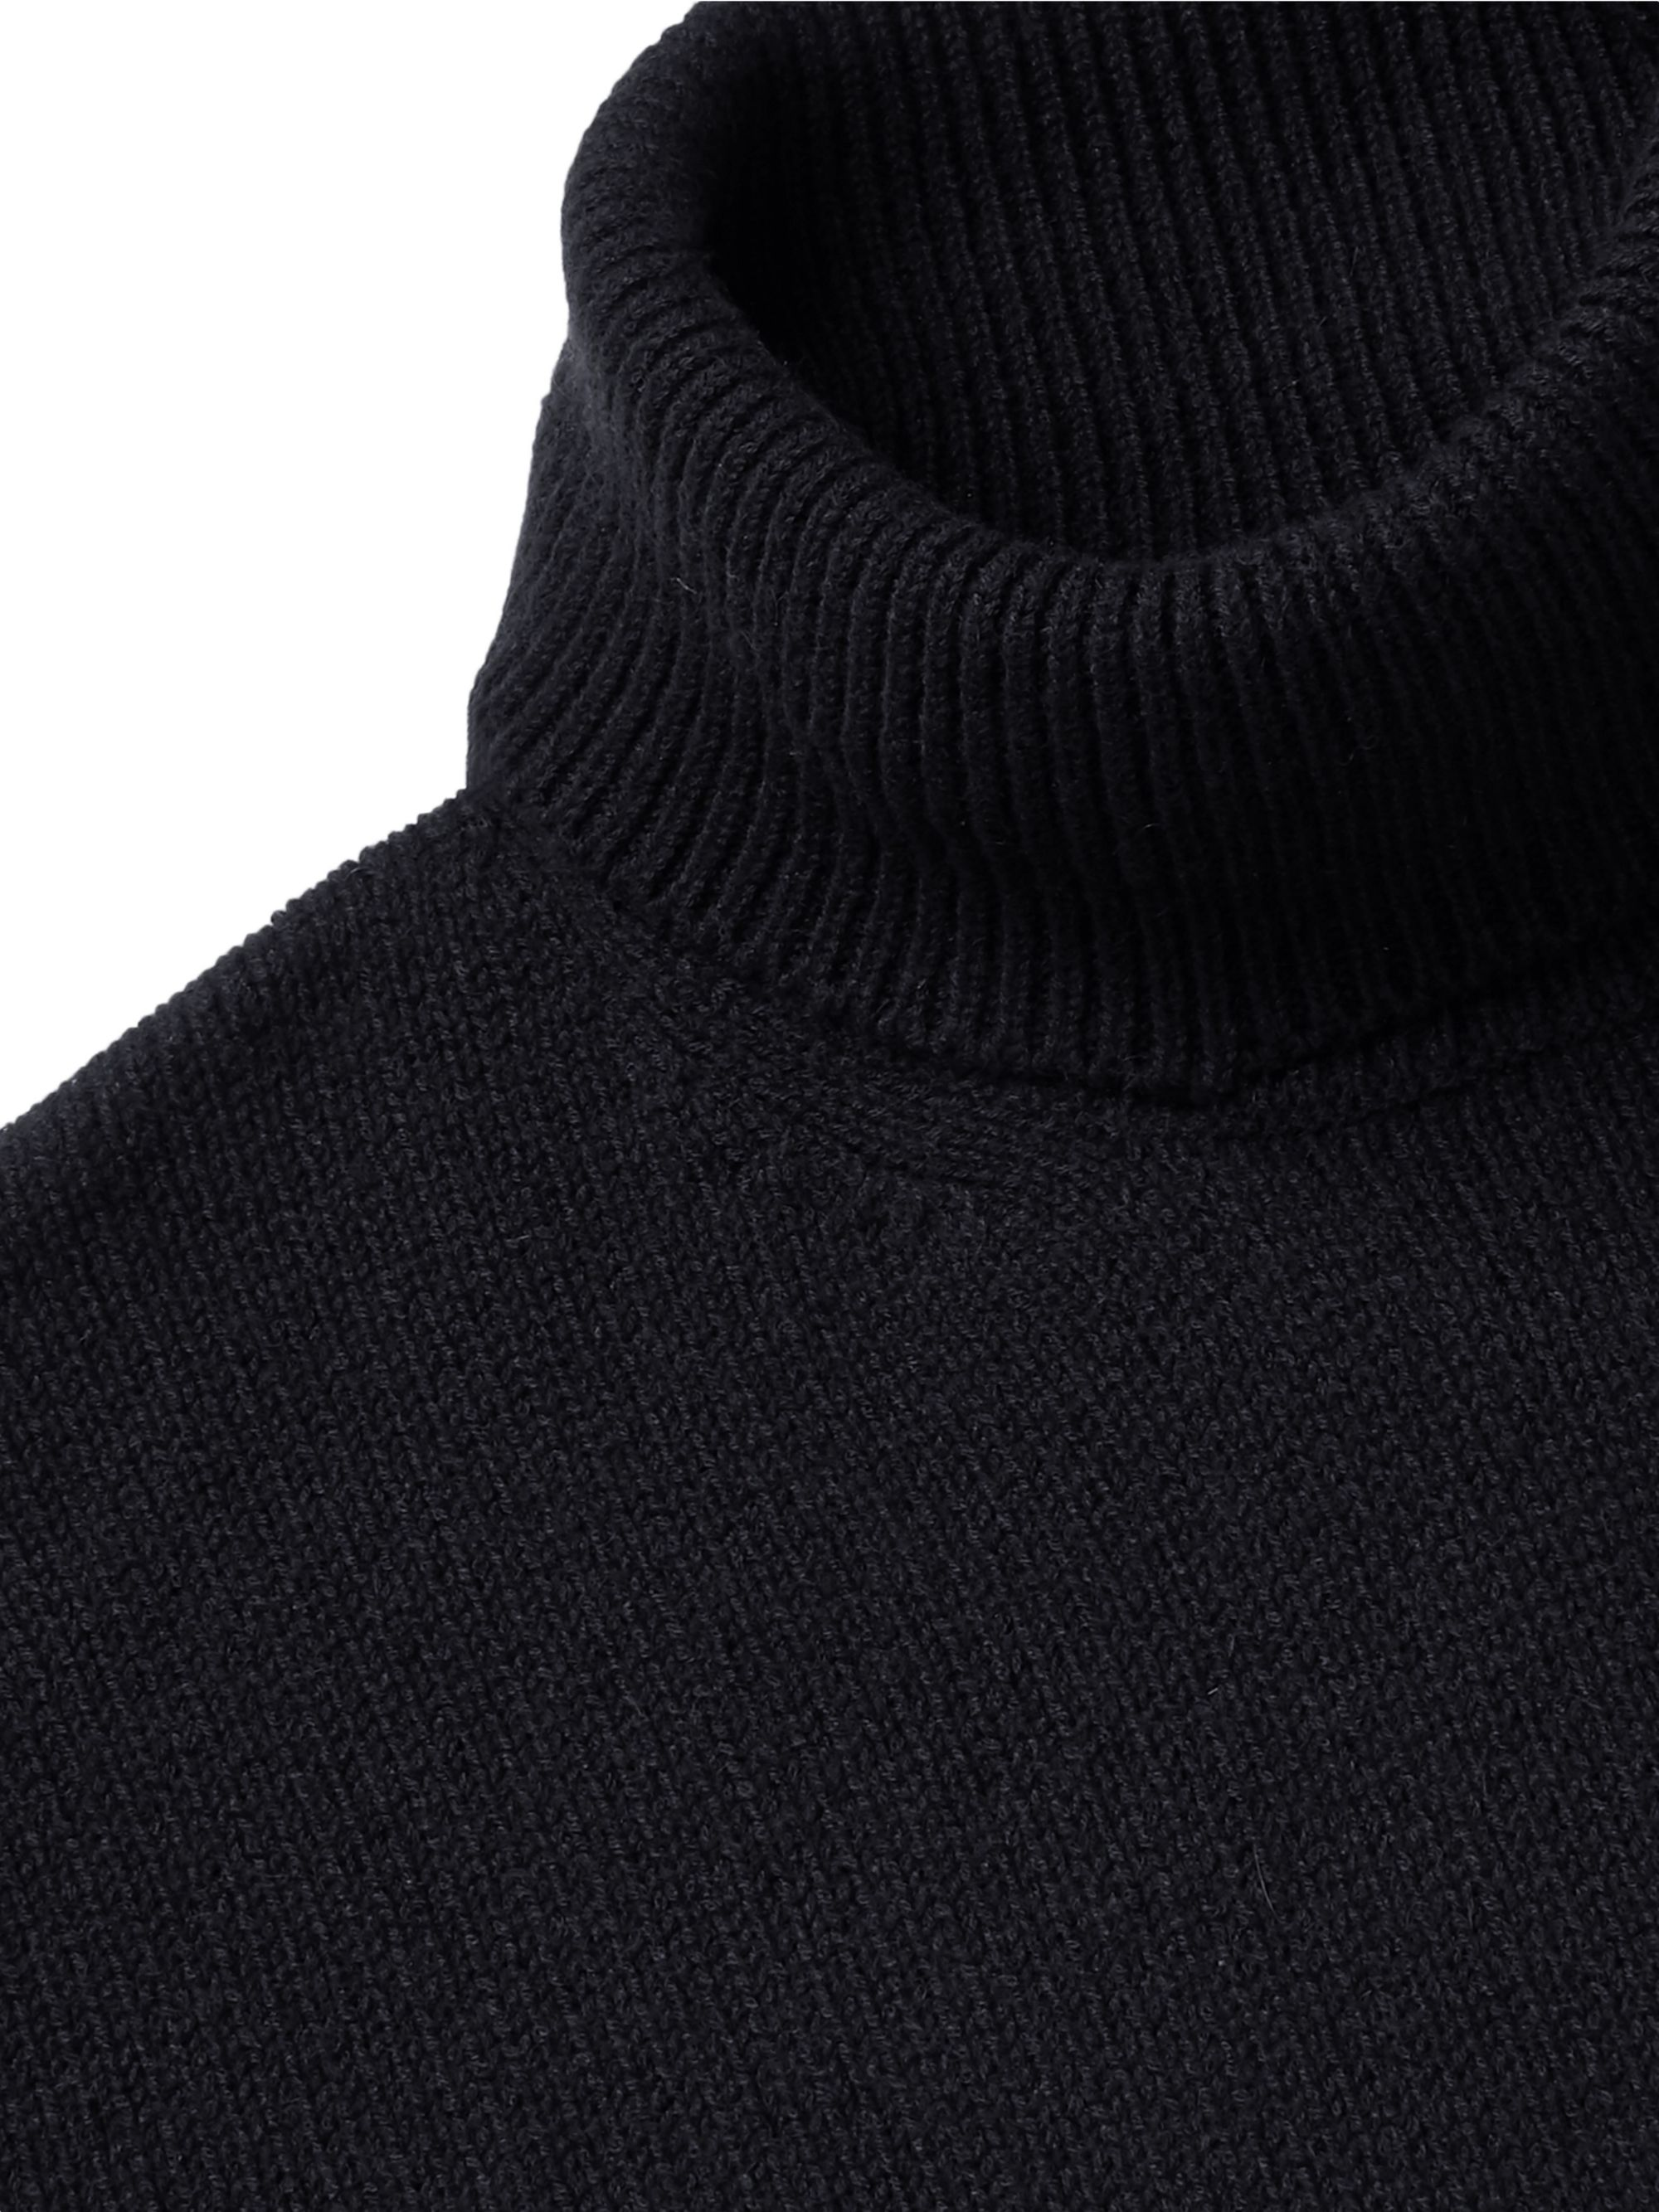 Massimo Alba Watercolour-Dyed Cashmere Rollneck Sweater